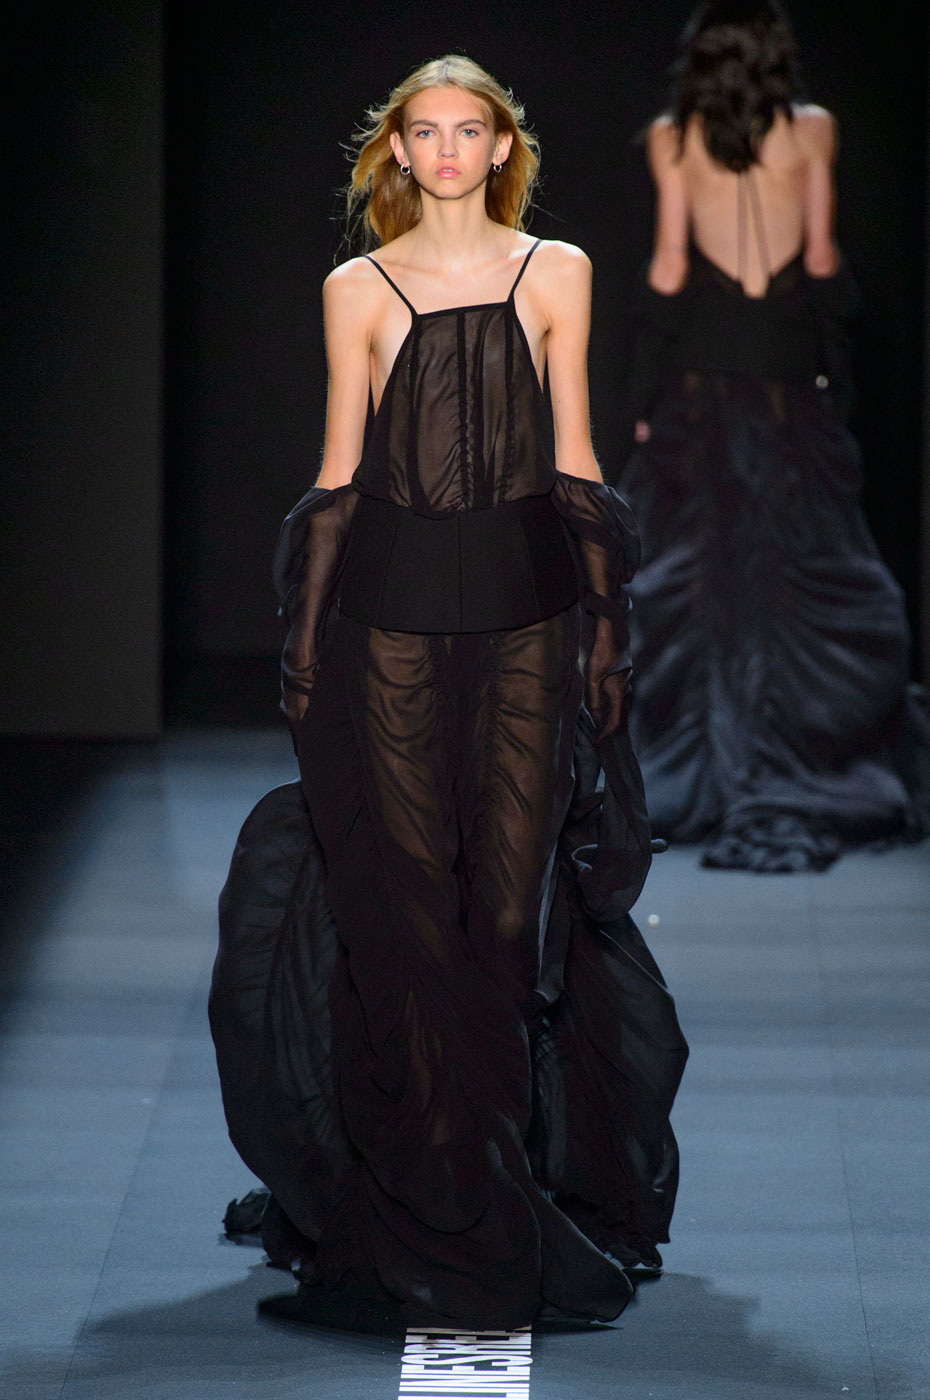 Vera wang spring / summer 2017 collection - new york fashion week